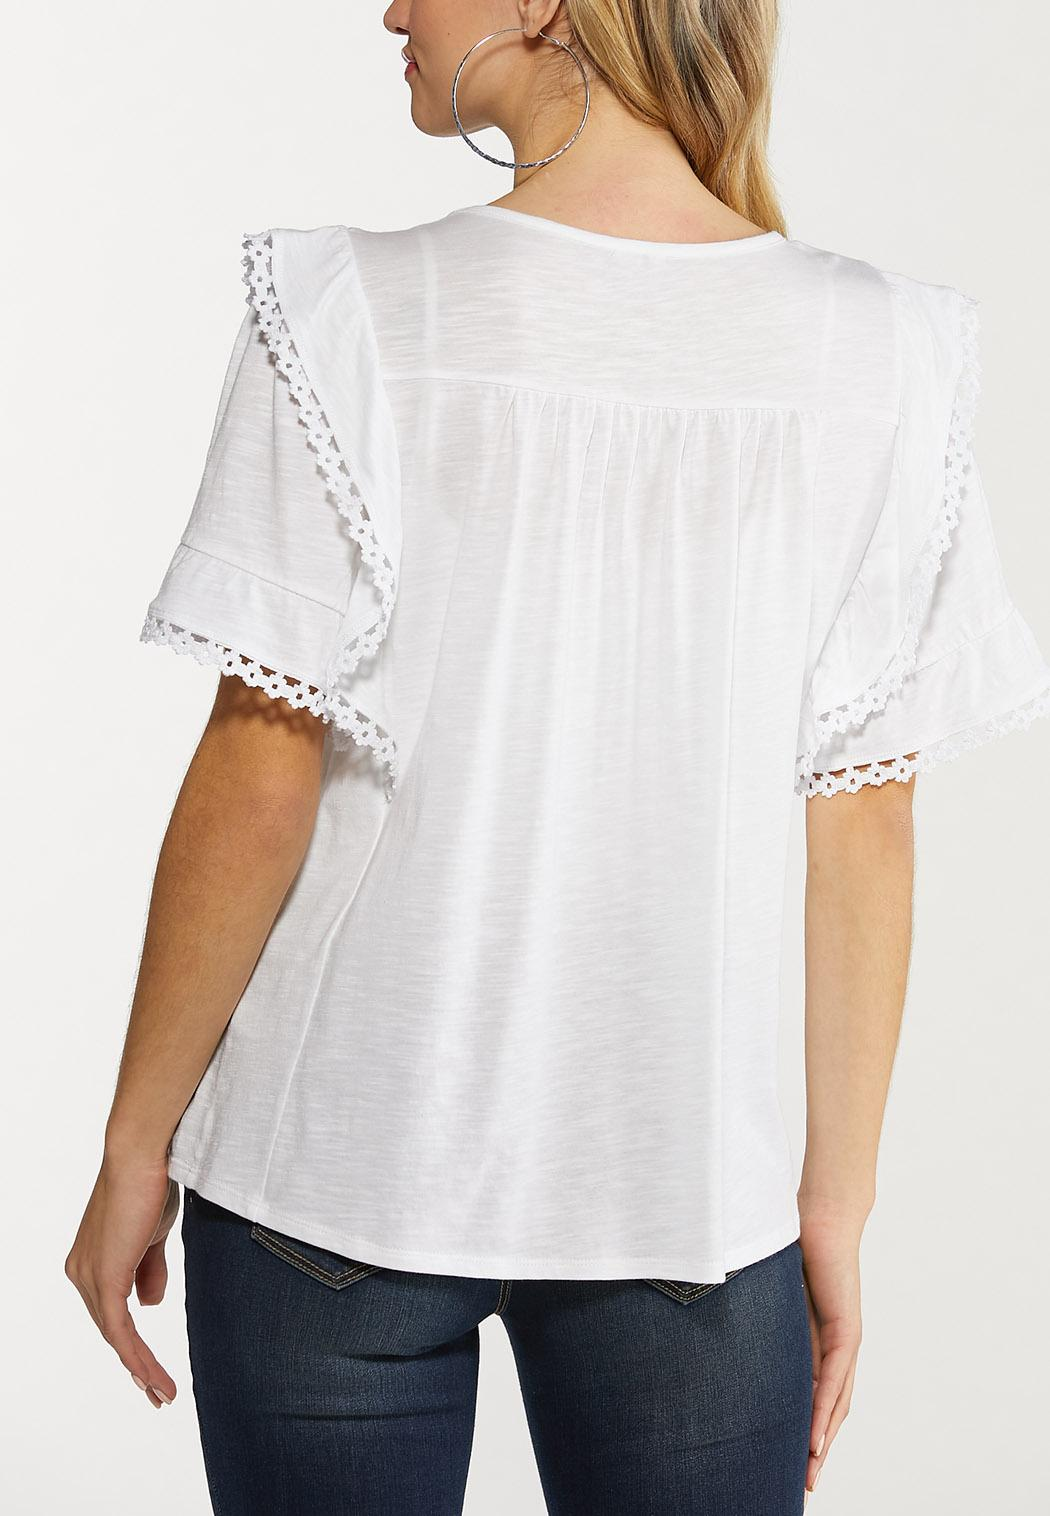 Ruffled Flutter Lace Top (Item #44515149)